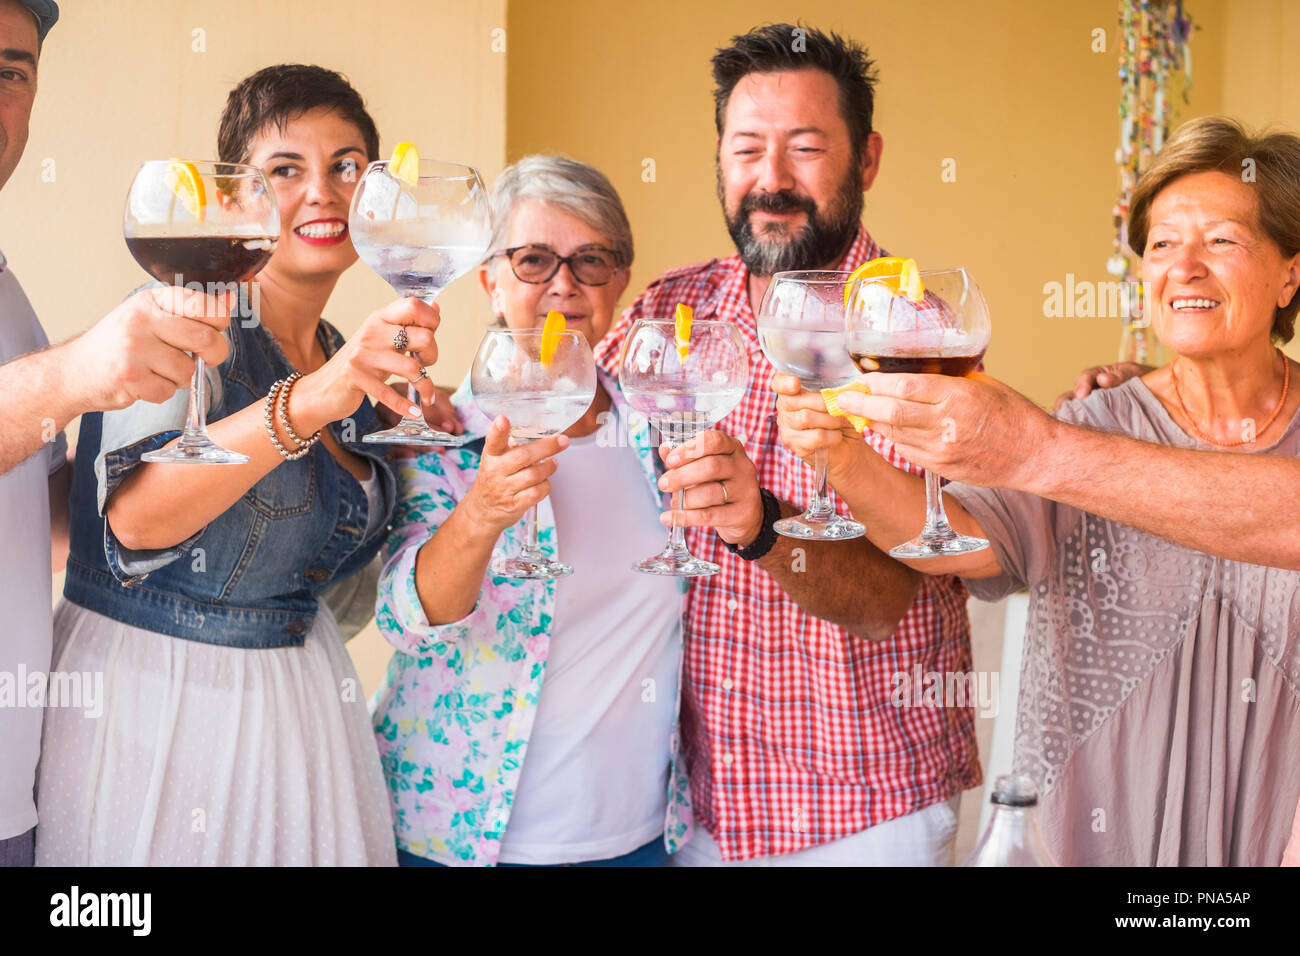 happy group of different ages people celebrating and having fun together in friendship at home or restaurant. cheering and toasting with cocktails and - Stock Image